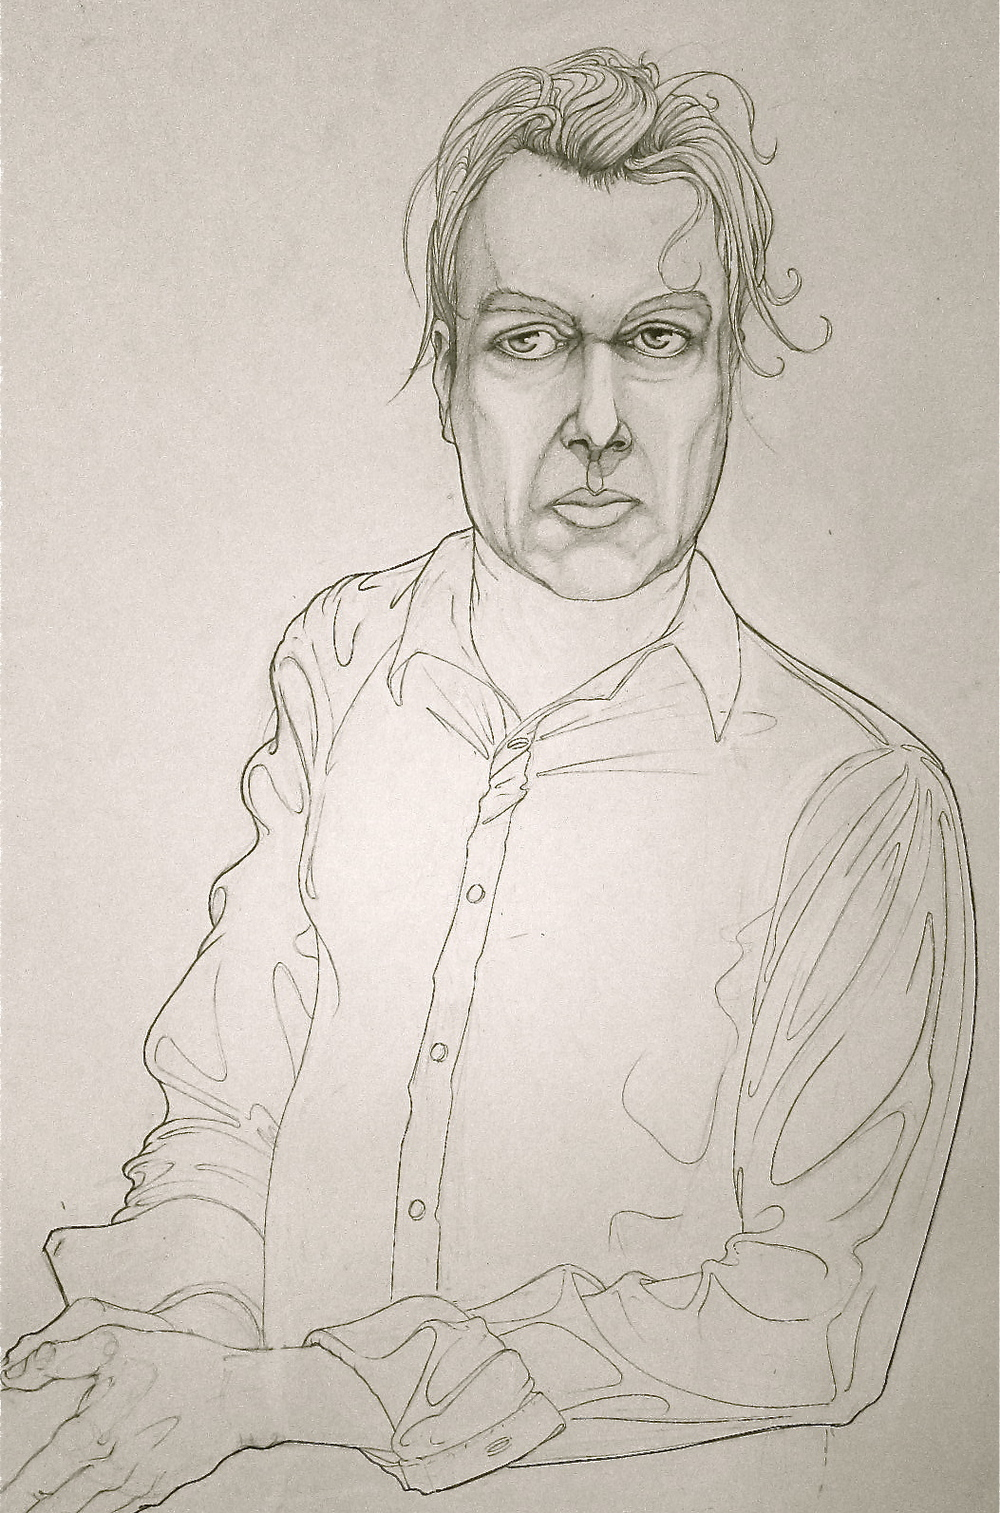 christopher hitchens. unknown private collection